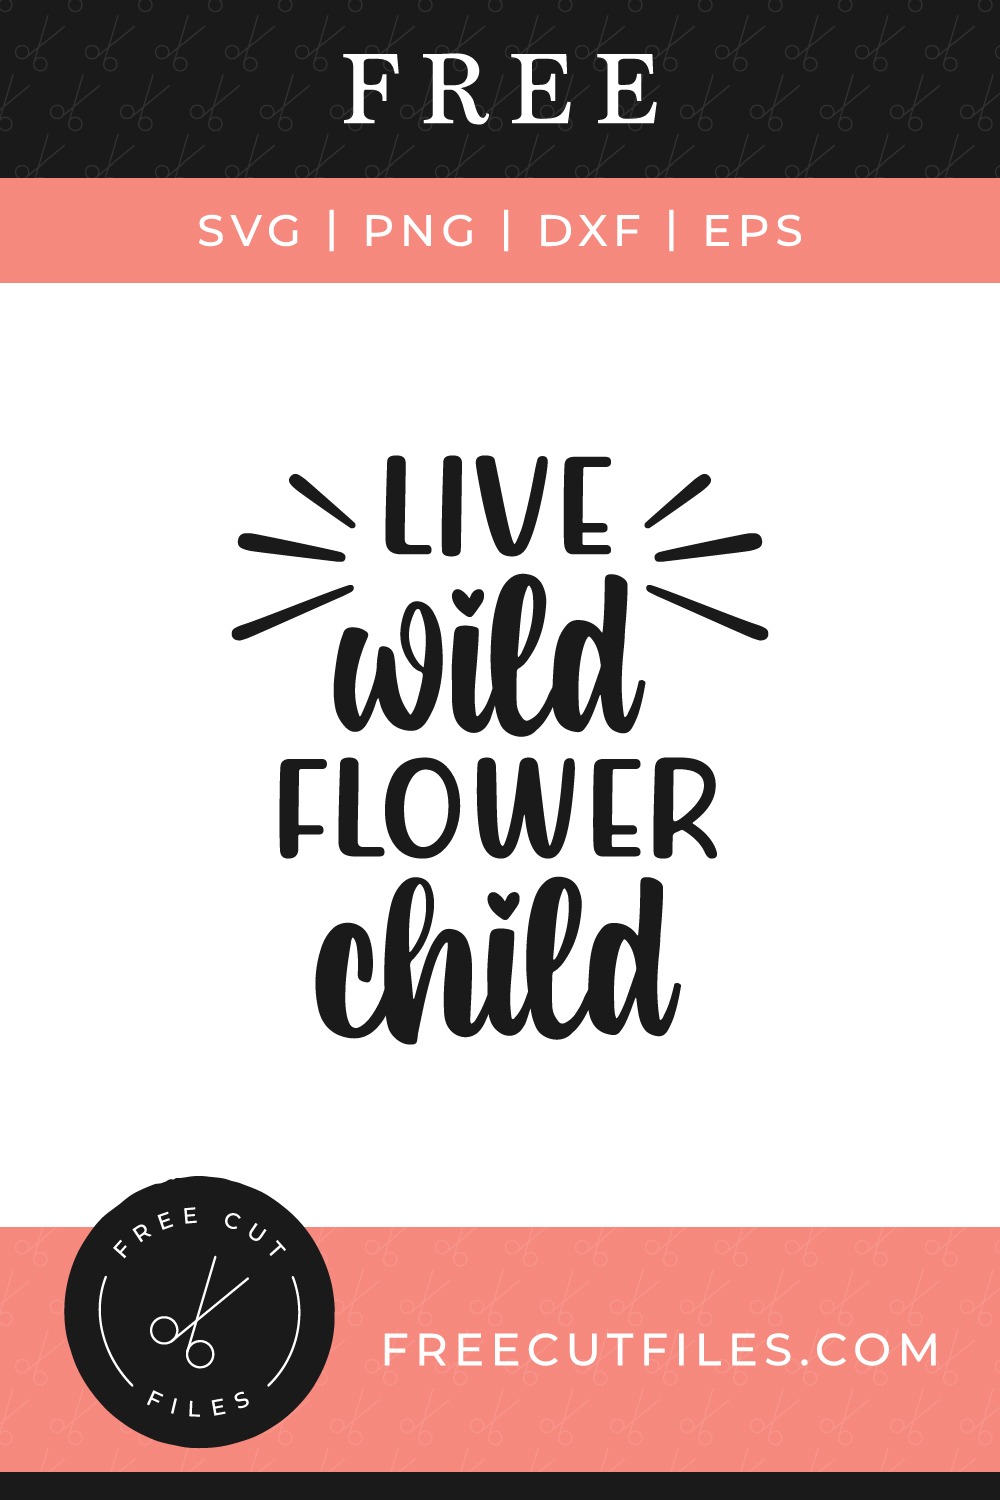 Live wild flower child Free SVG quote cut file